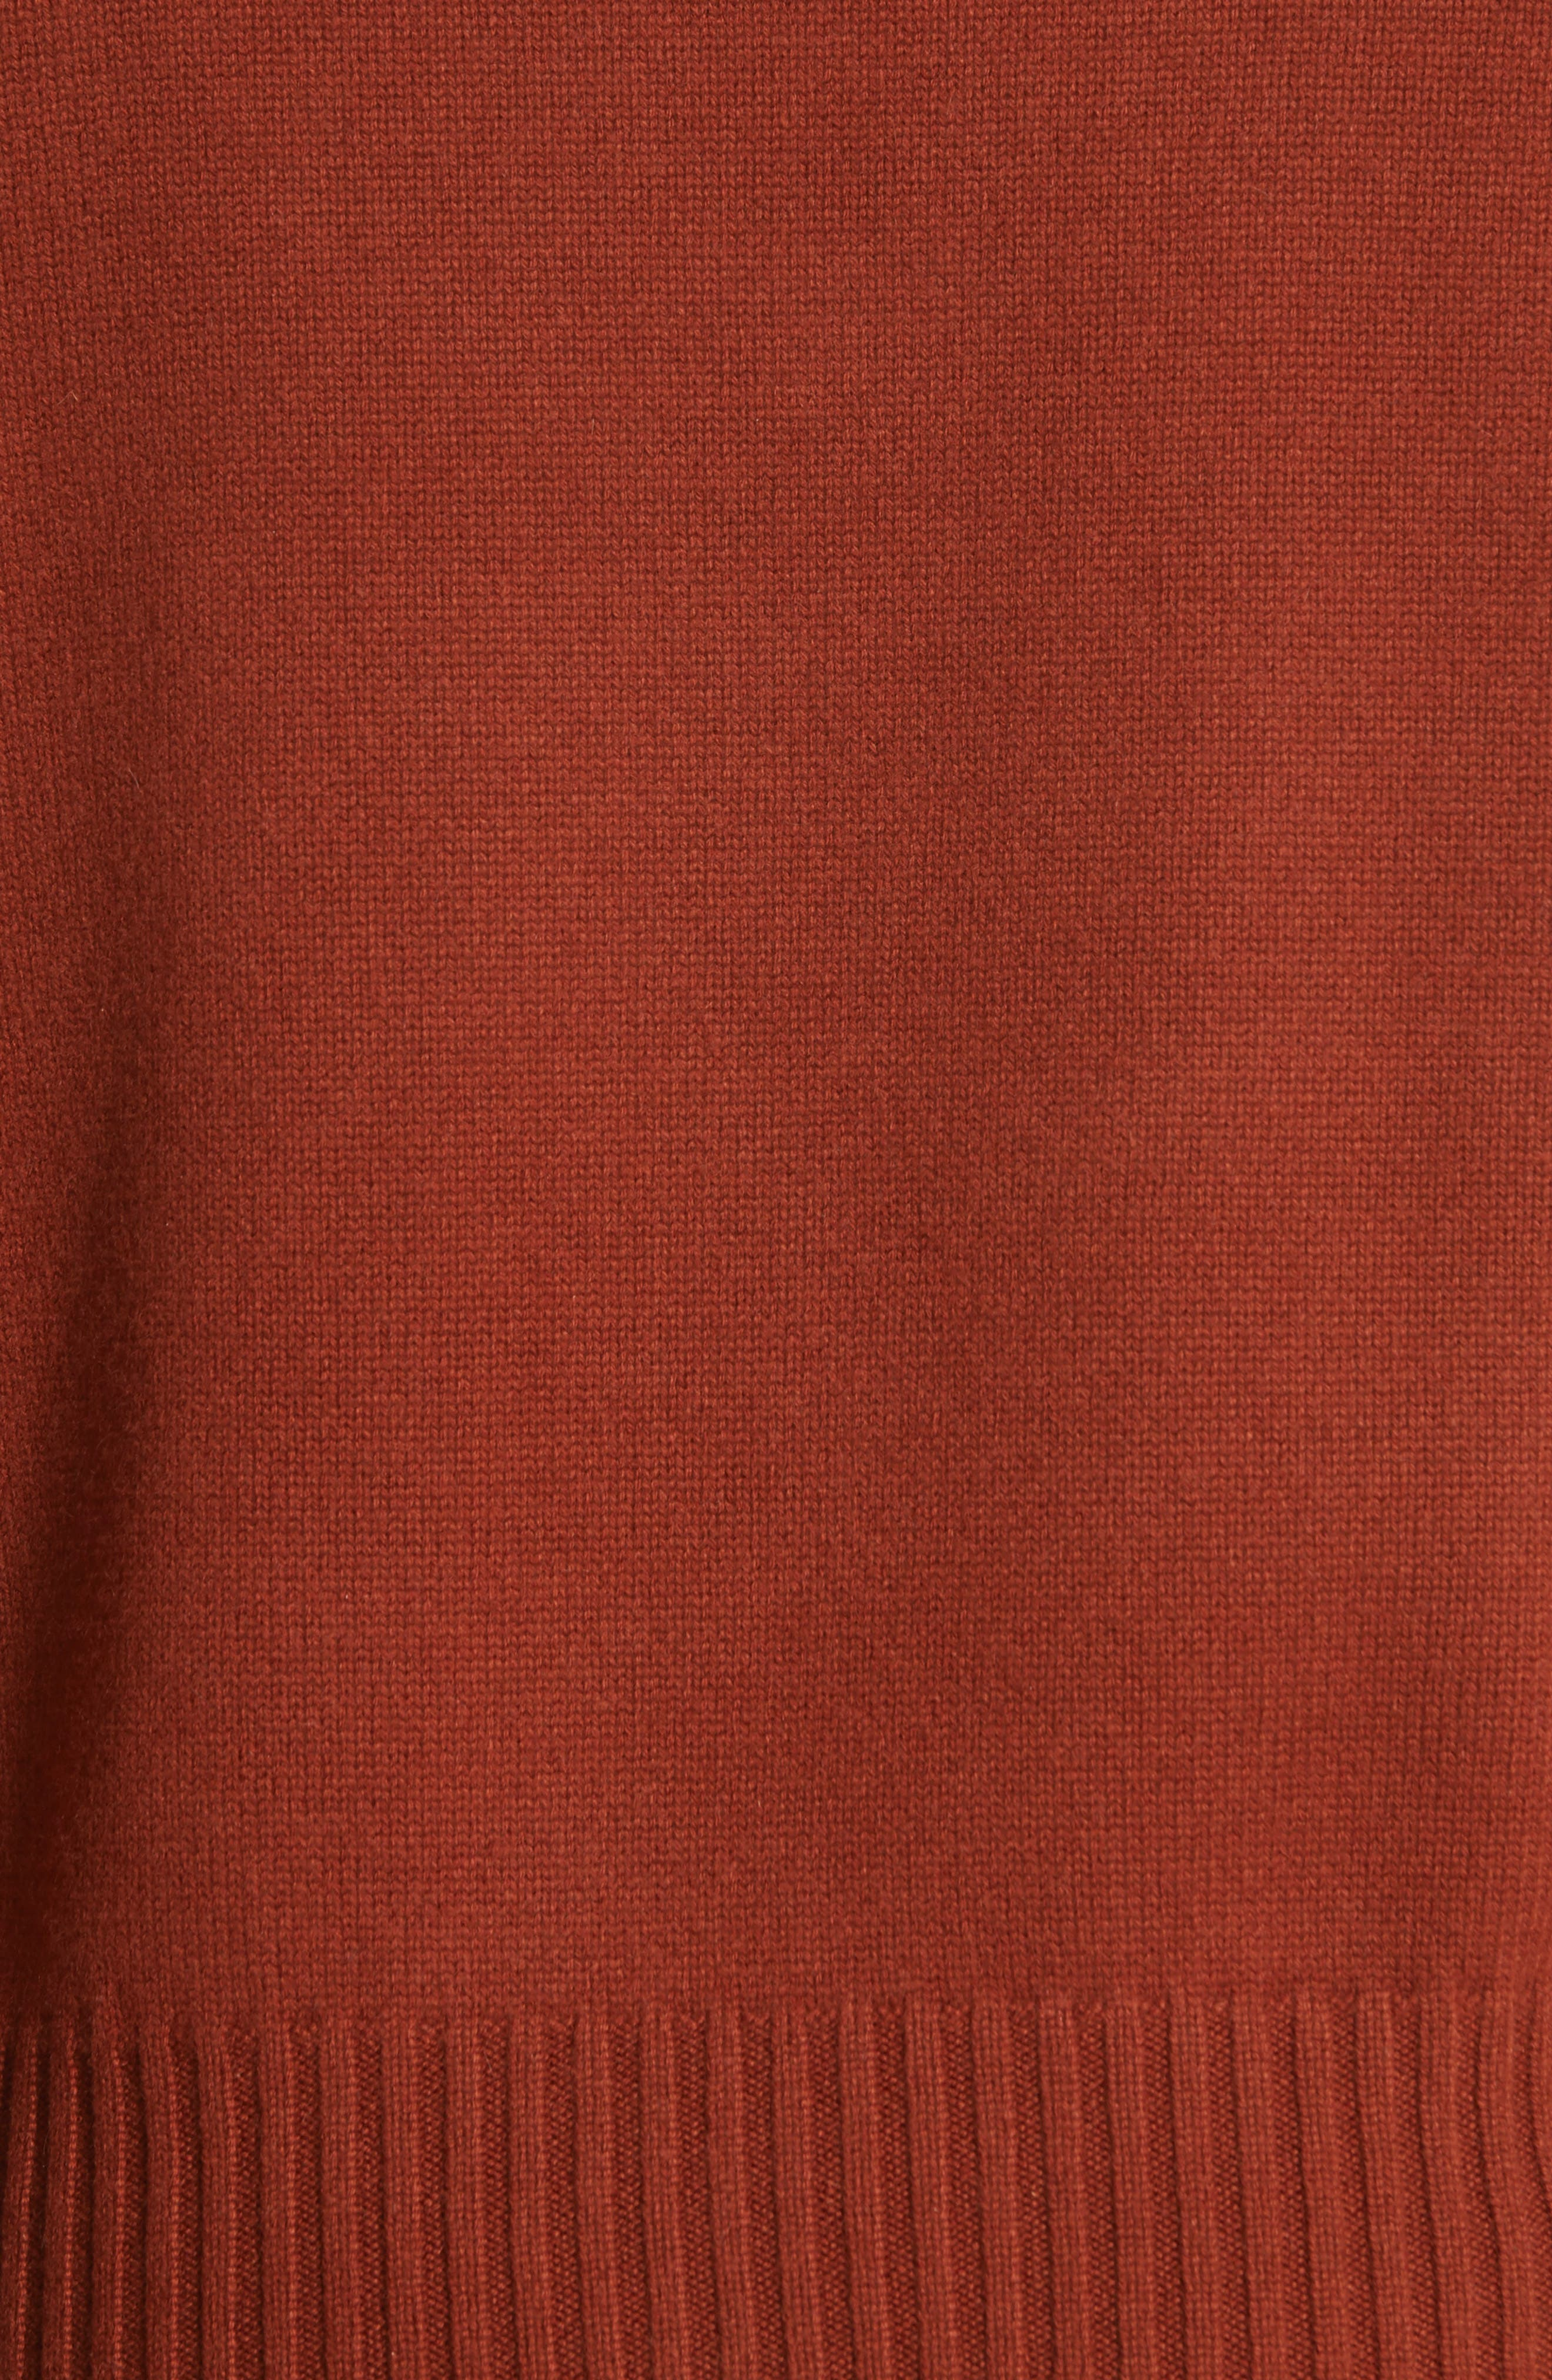 Cashmere Sweater,                             Alternate thumbnail 5, color,                             SIENNA RED